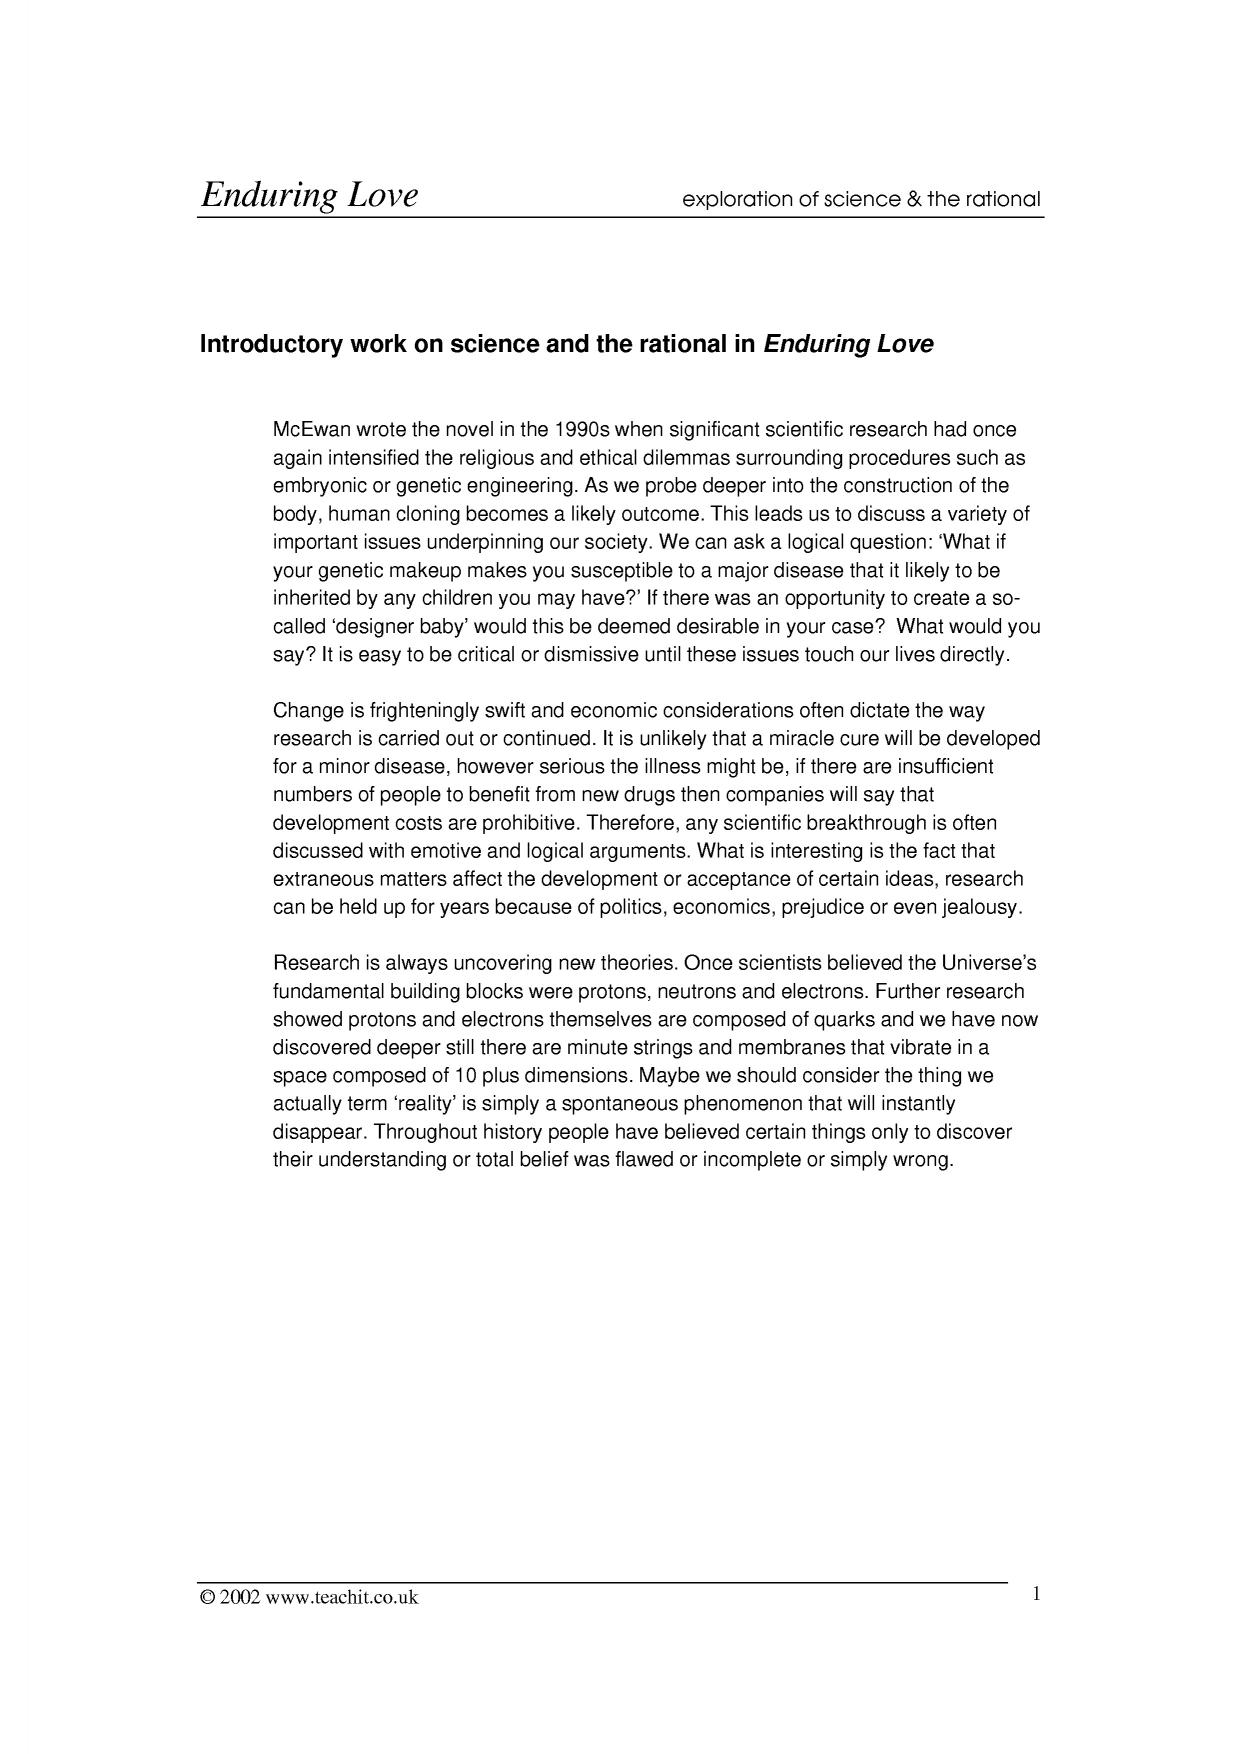 Enduring love essay questions